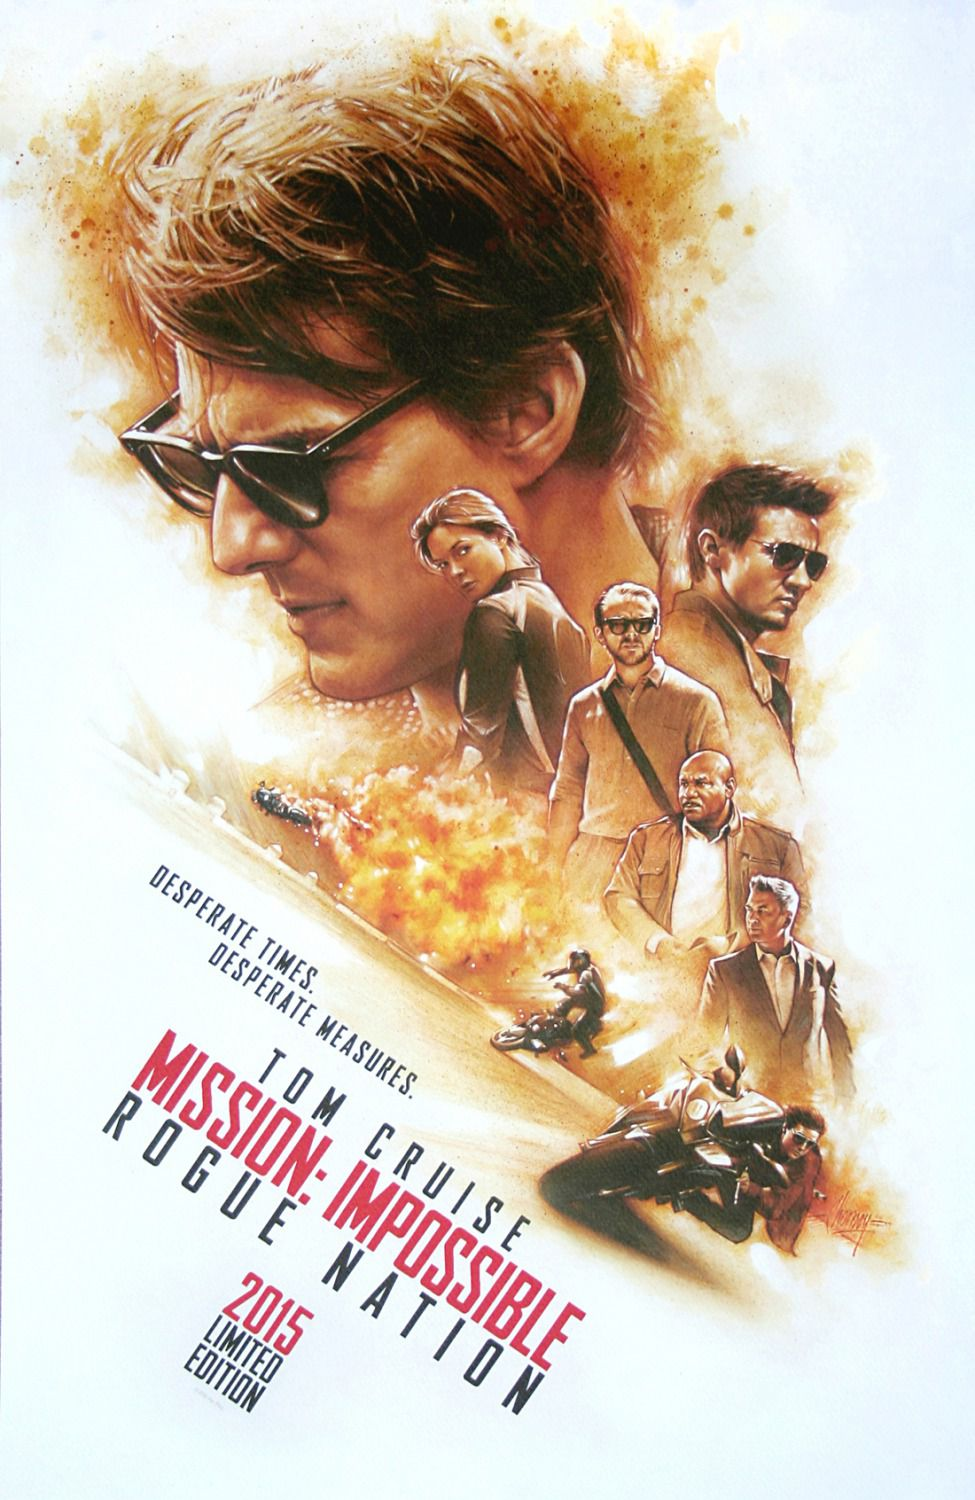 Mission Impossible - Rogue Nation - poster